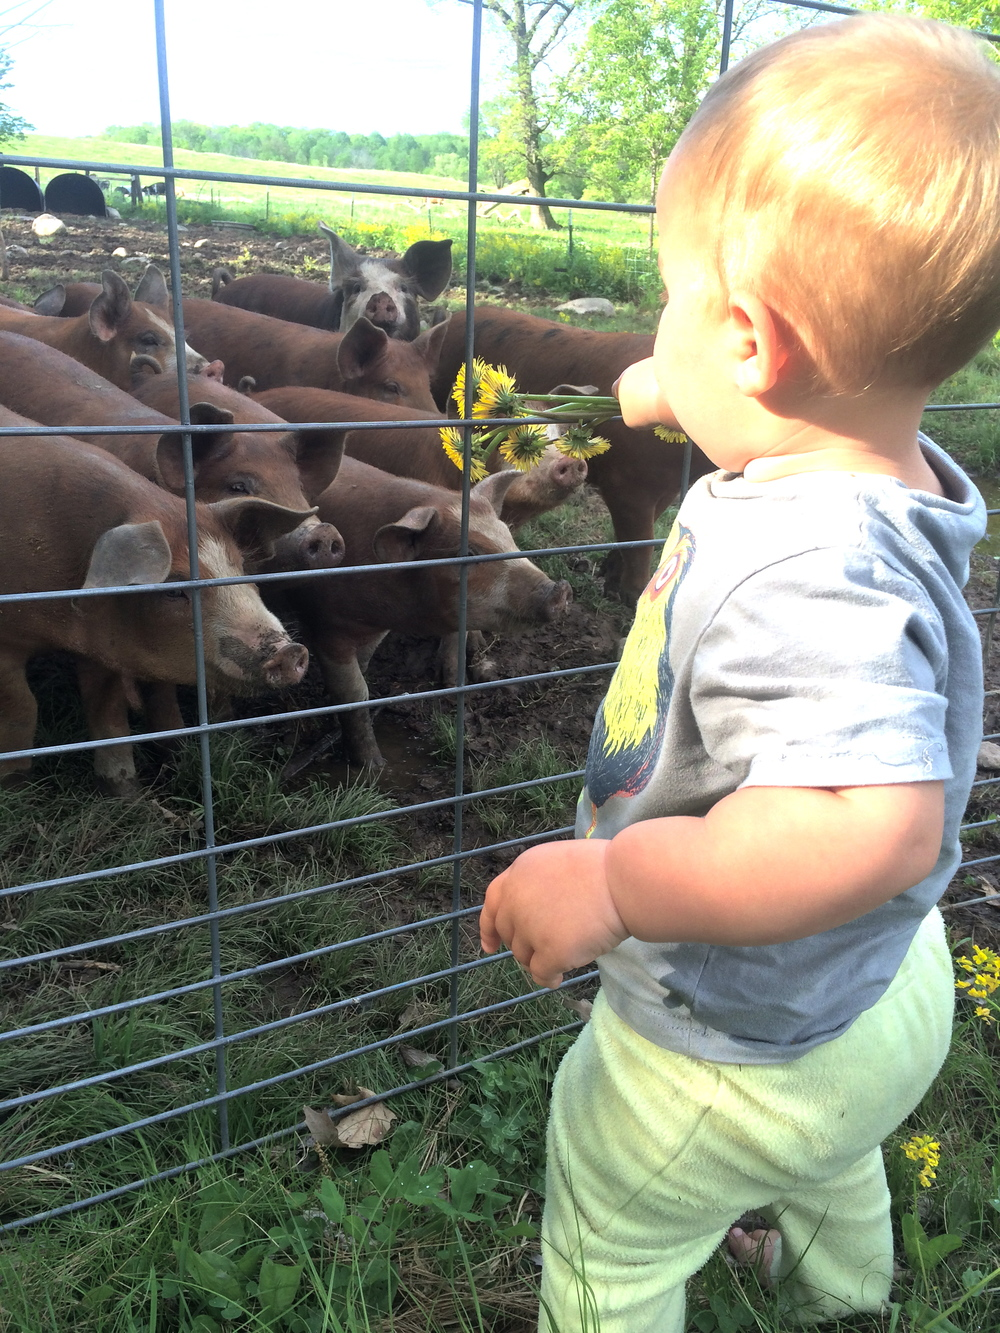 Sadie feeding the pigs dandelions.